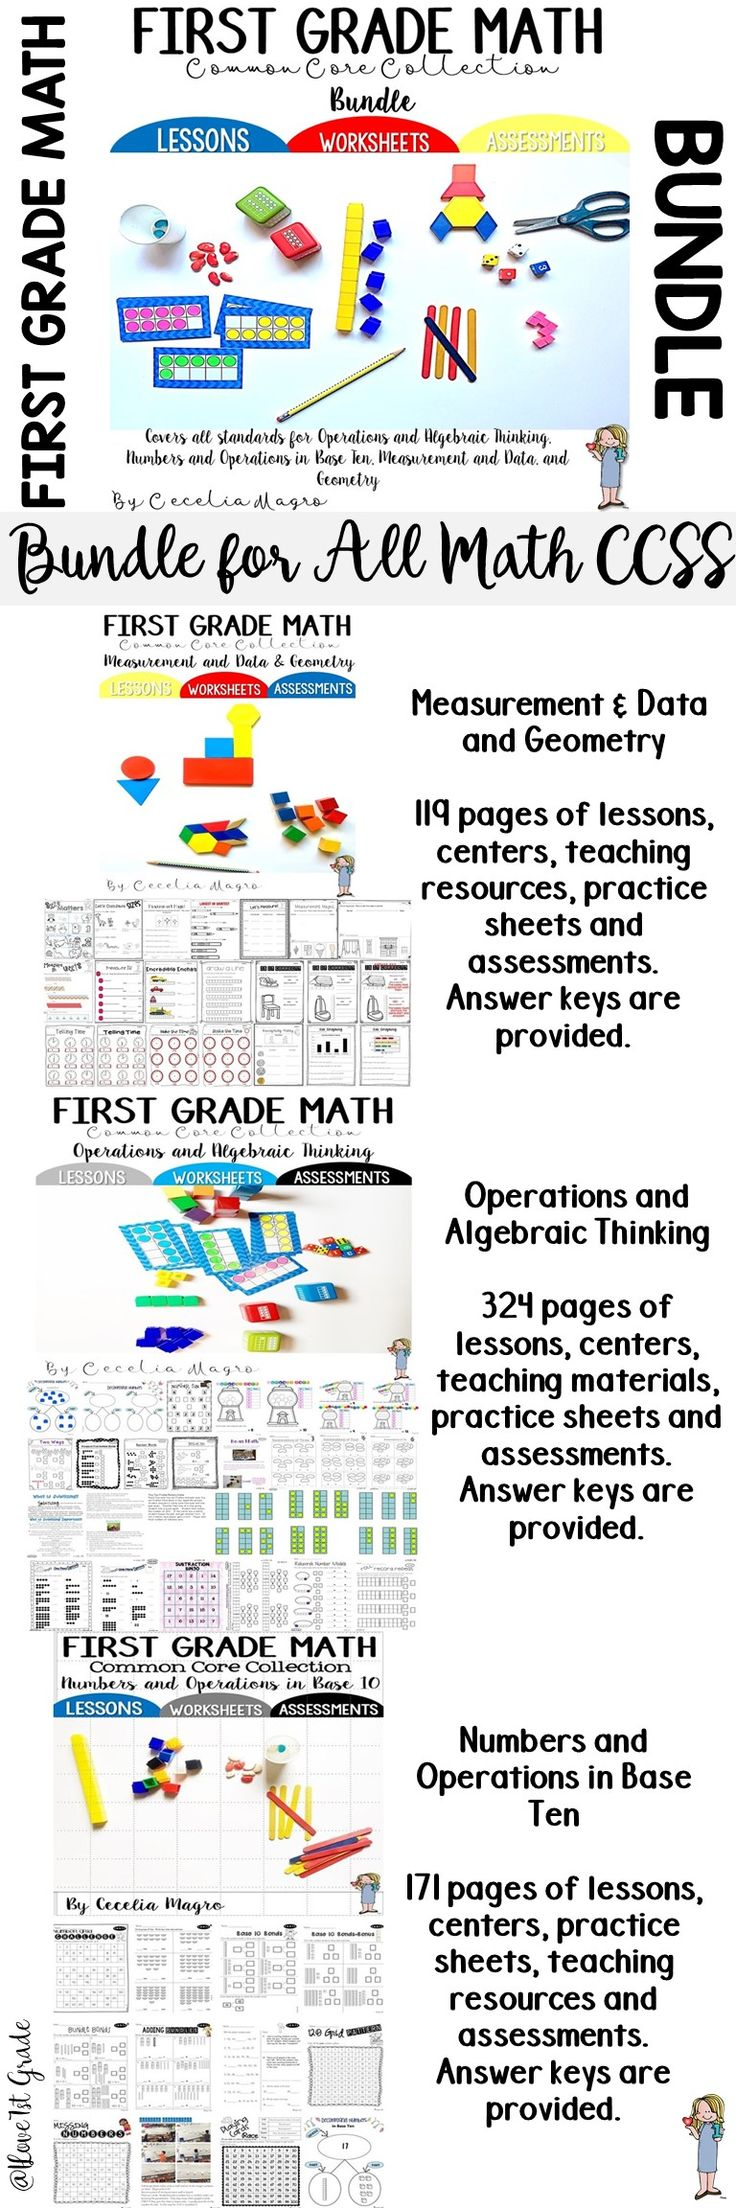 Worksheet First Grade Math Activities 17 best images about math for first grade on pinterest fact 614 bundled pages of original activities perfectly aligned to common core standards